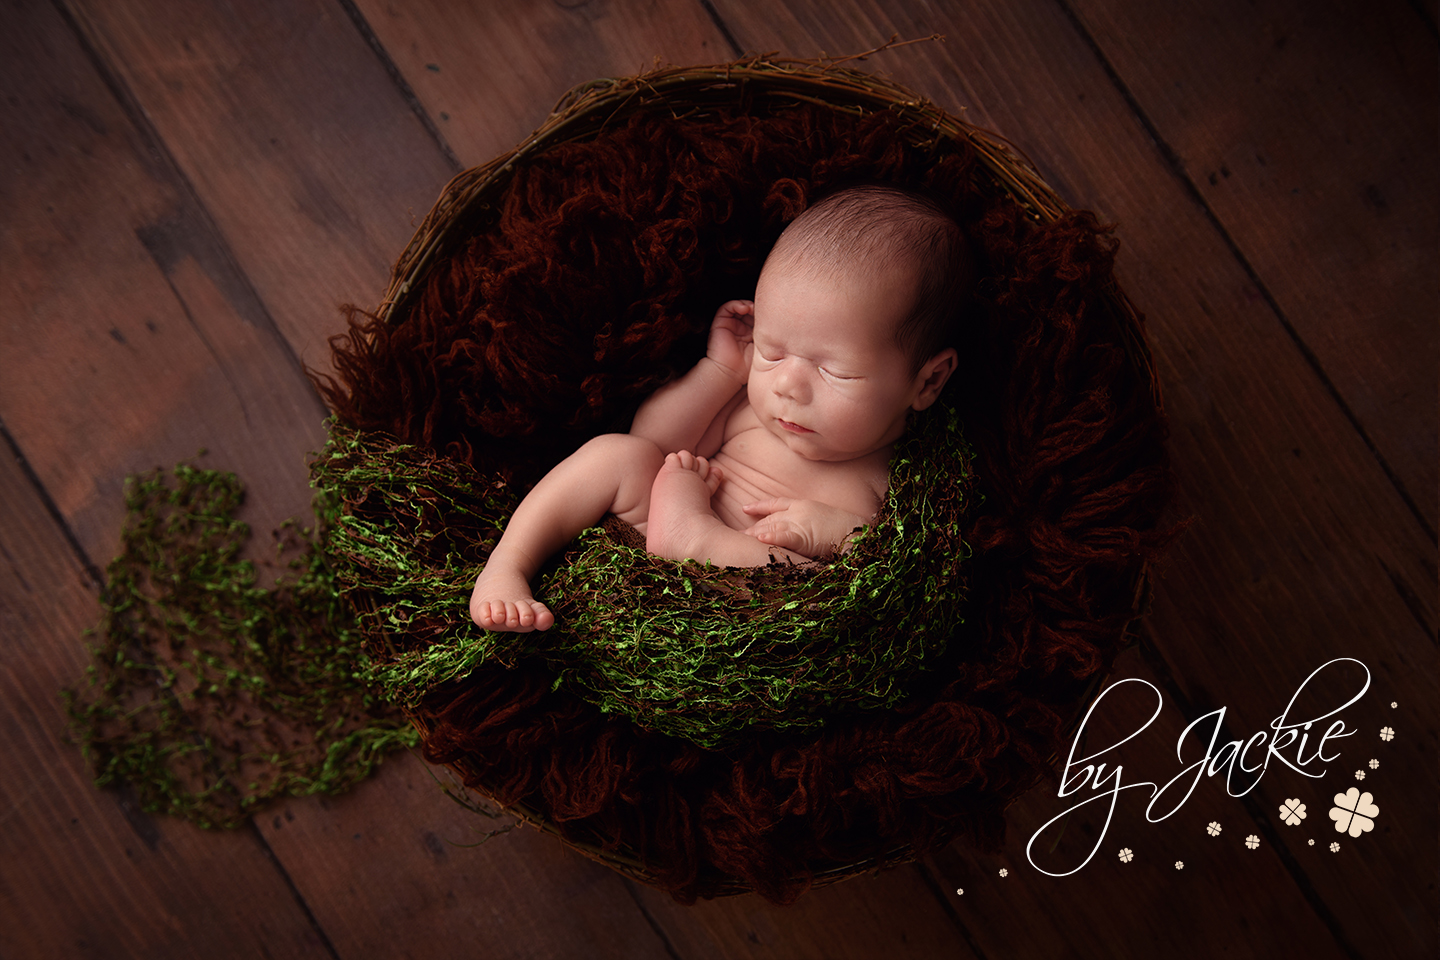 Image of newborn baby boy nestled in asleep by Babies By Jackie. Baby photographer with studio located in Market Weighton, near Pocklington and York, North Yorkshire UK